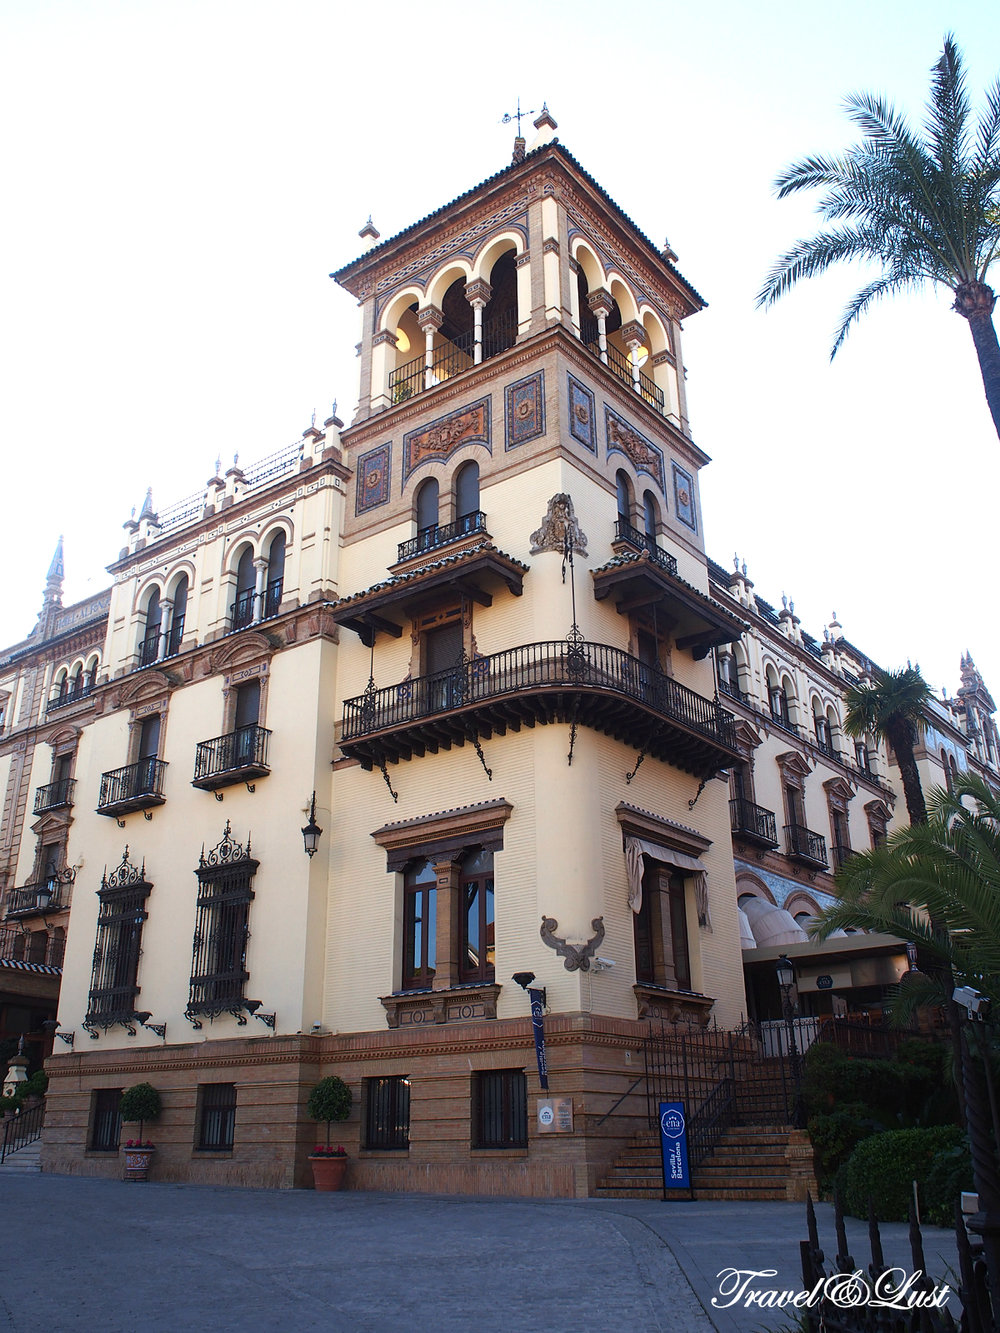 Commissioned by the King of Spain to play host to international dignitaries during the 1929 Exhibition, Hotel Alfonso XIII remains an iconic cultural landmark.Centrally located in the historic quarter of Santa Cruz, it sits next to Reales Alcázares and Seville Cathedral.